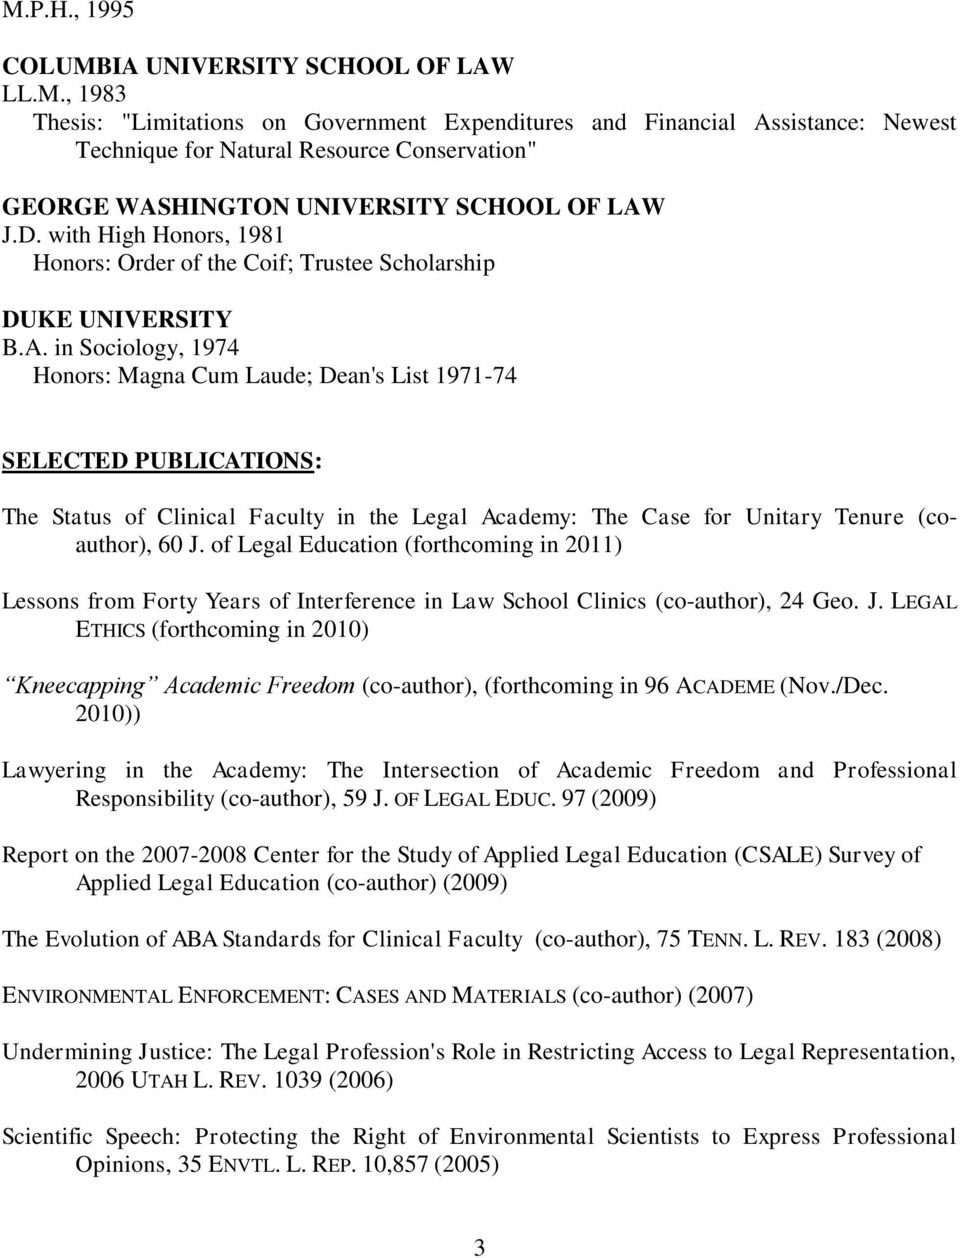 in Sociology, 1974 Honors: Magna Cum Laude; Dean's List 1971-74 SELECTED PUBLICATIONS: The Status of Clinical Faculty in the Legal Academy: The Case for Unitary Tenure (coauthor), 60 J.